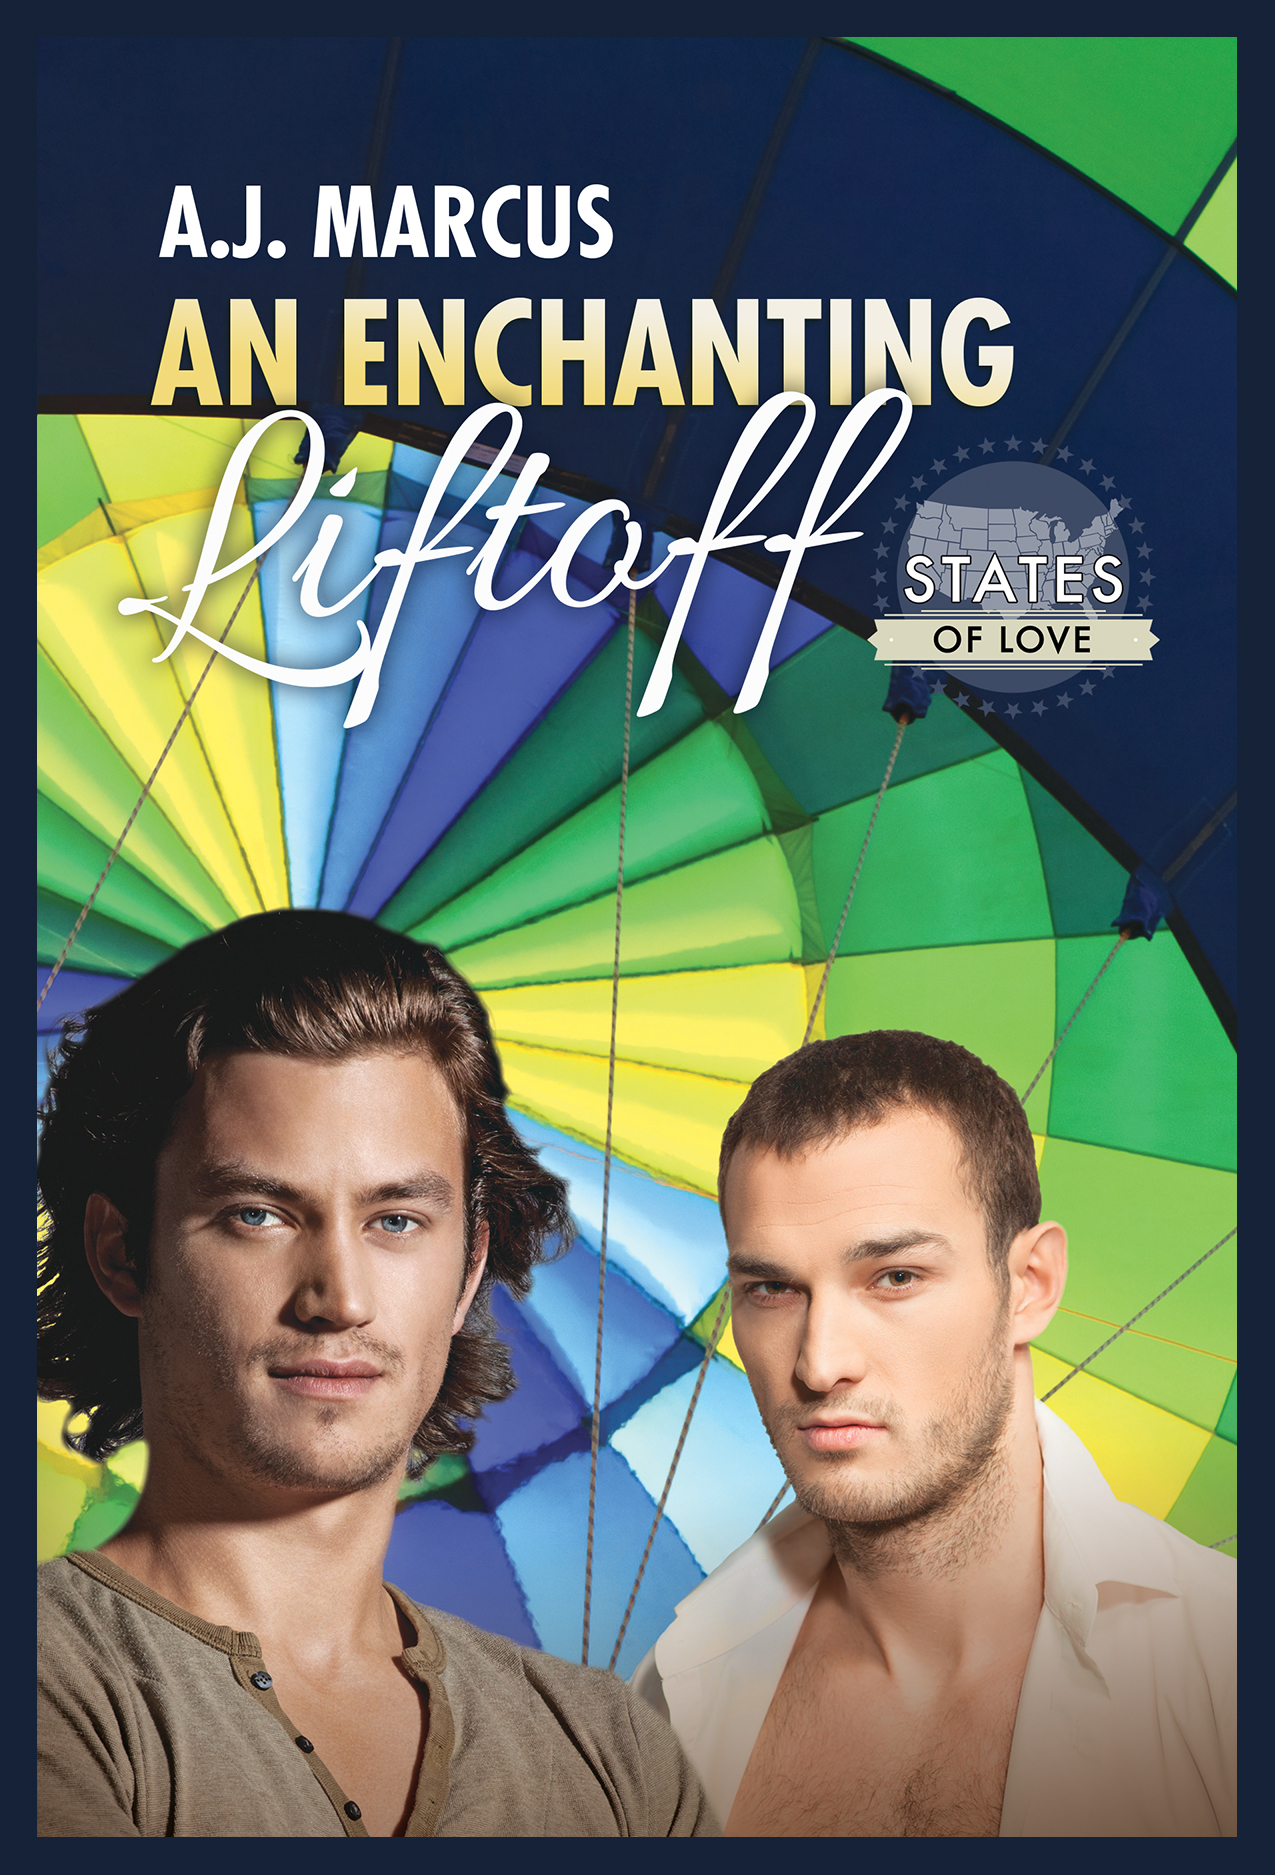 An Enchanting Liftoff by A.J. Marcus